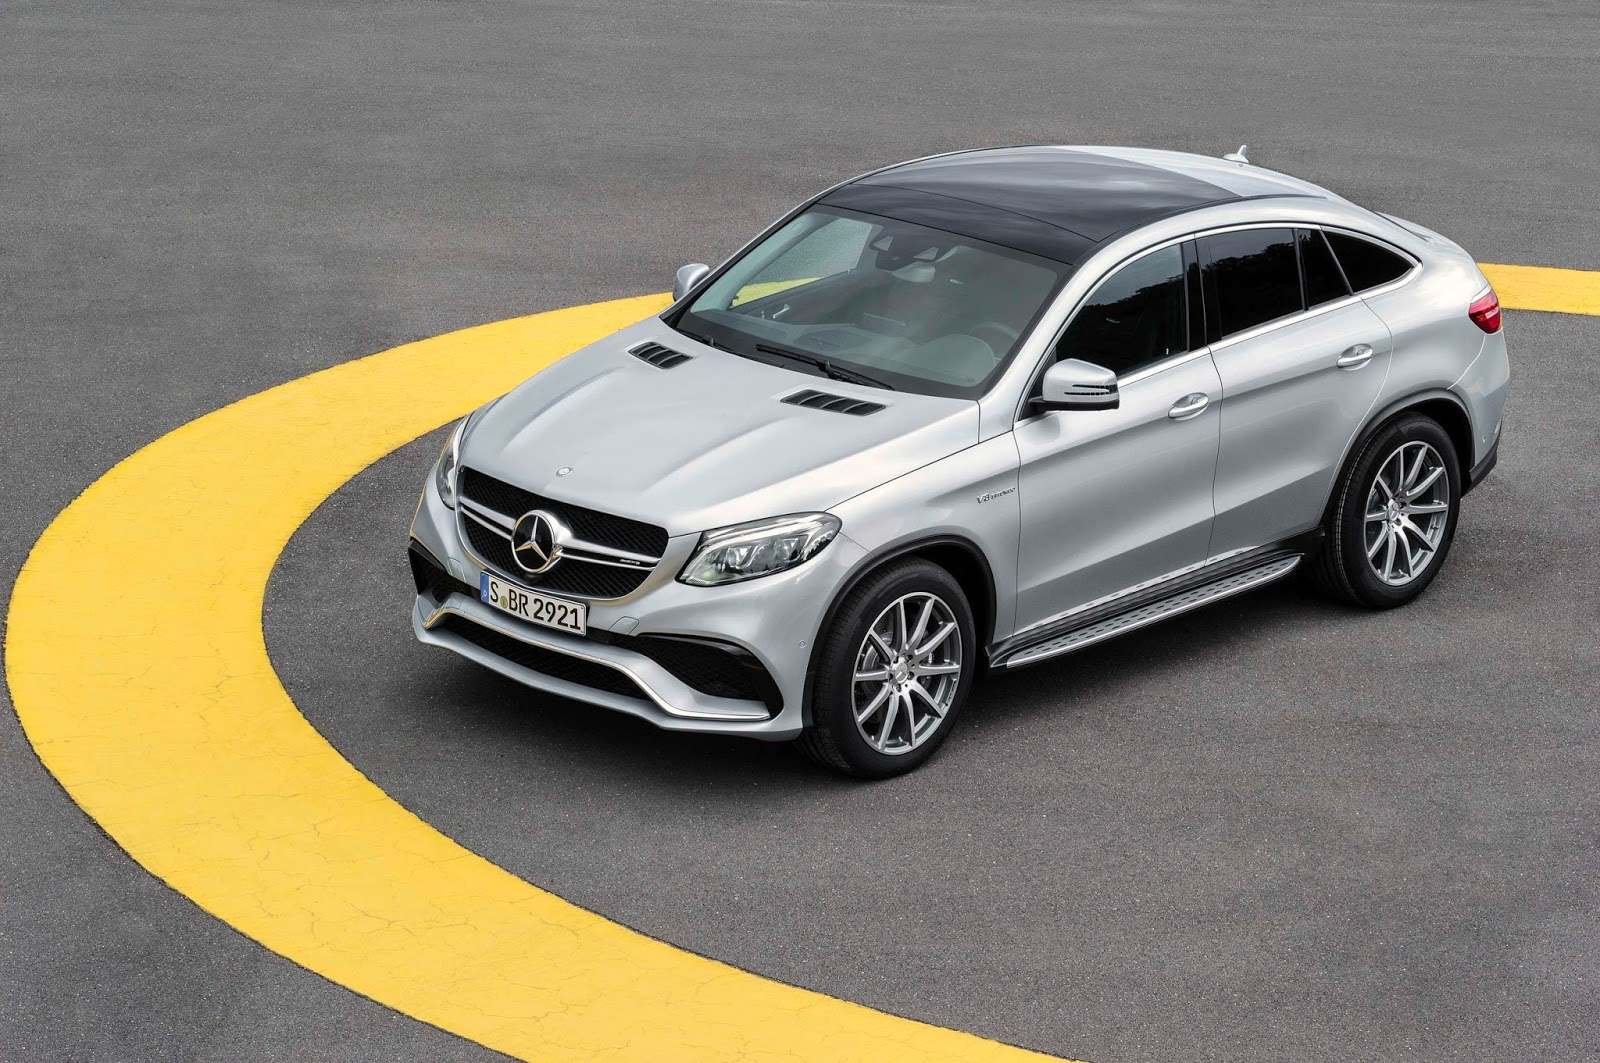 new mercedes amg gle 63 s coupe gets 577hp bi turbo v8. Black Bedroom Furniture Sets. Home Design Ideas